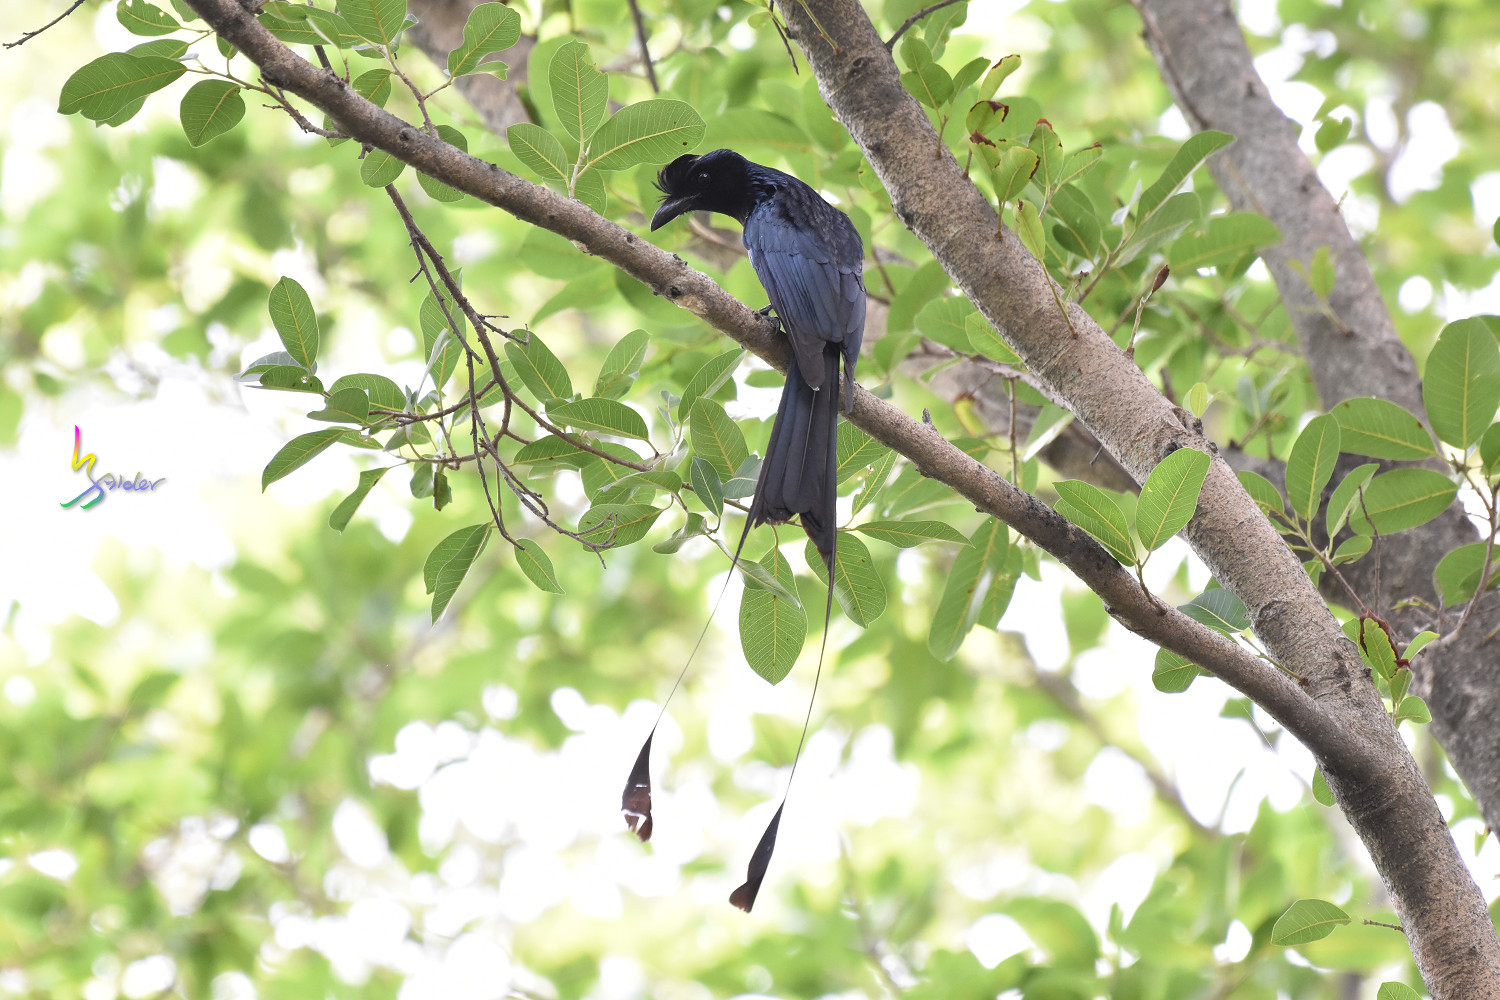 Greater_Racket-tailed_Drongo_1384